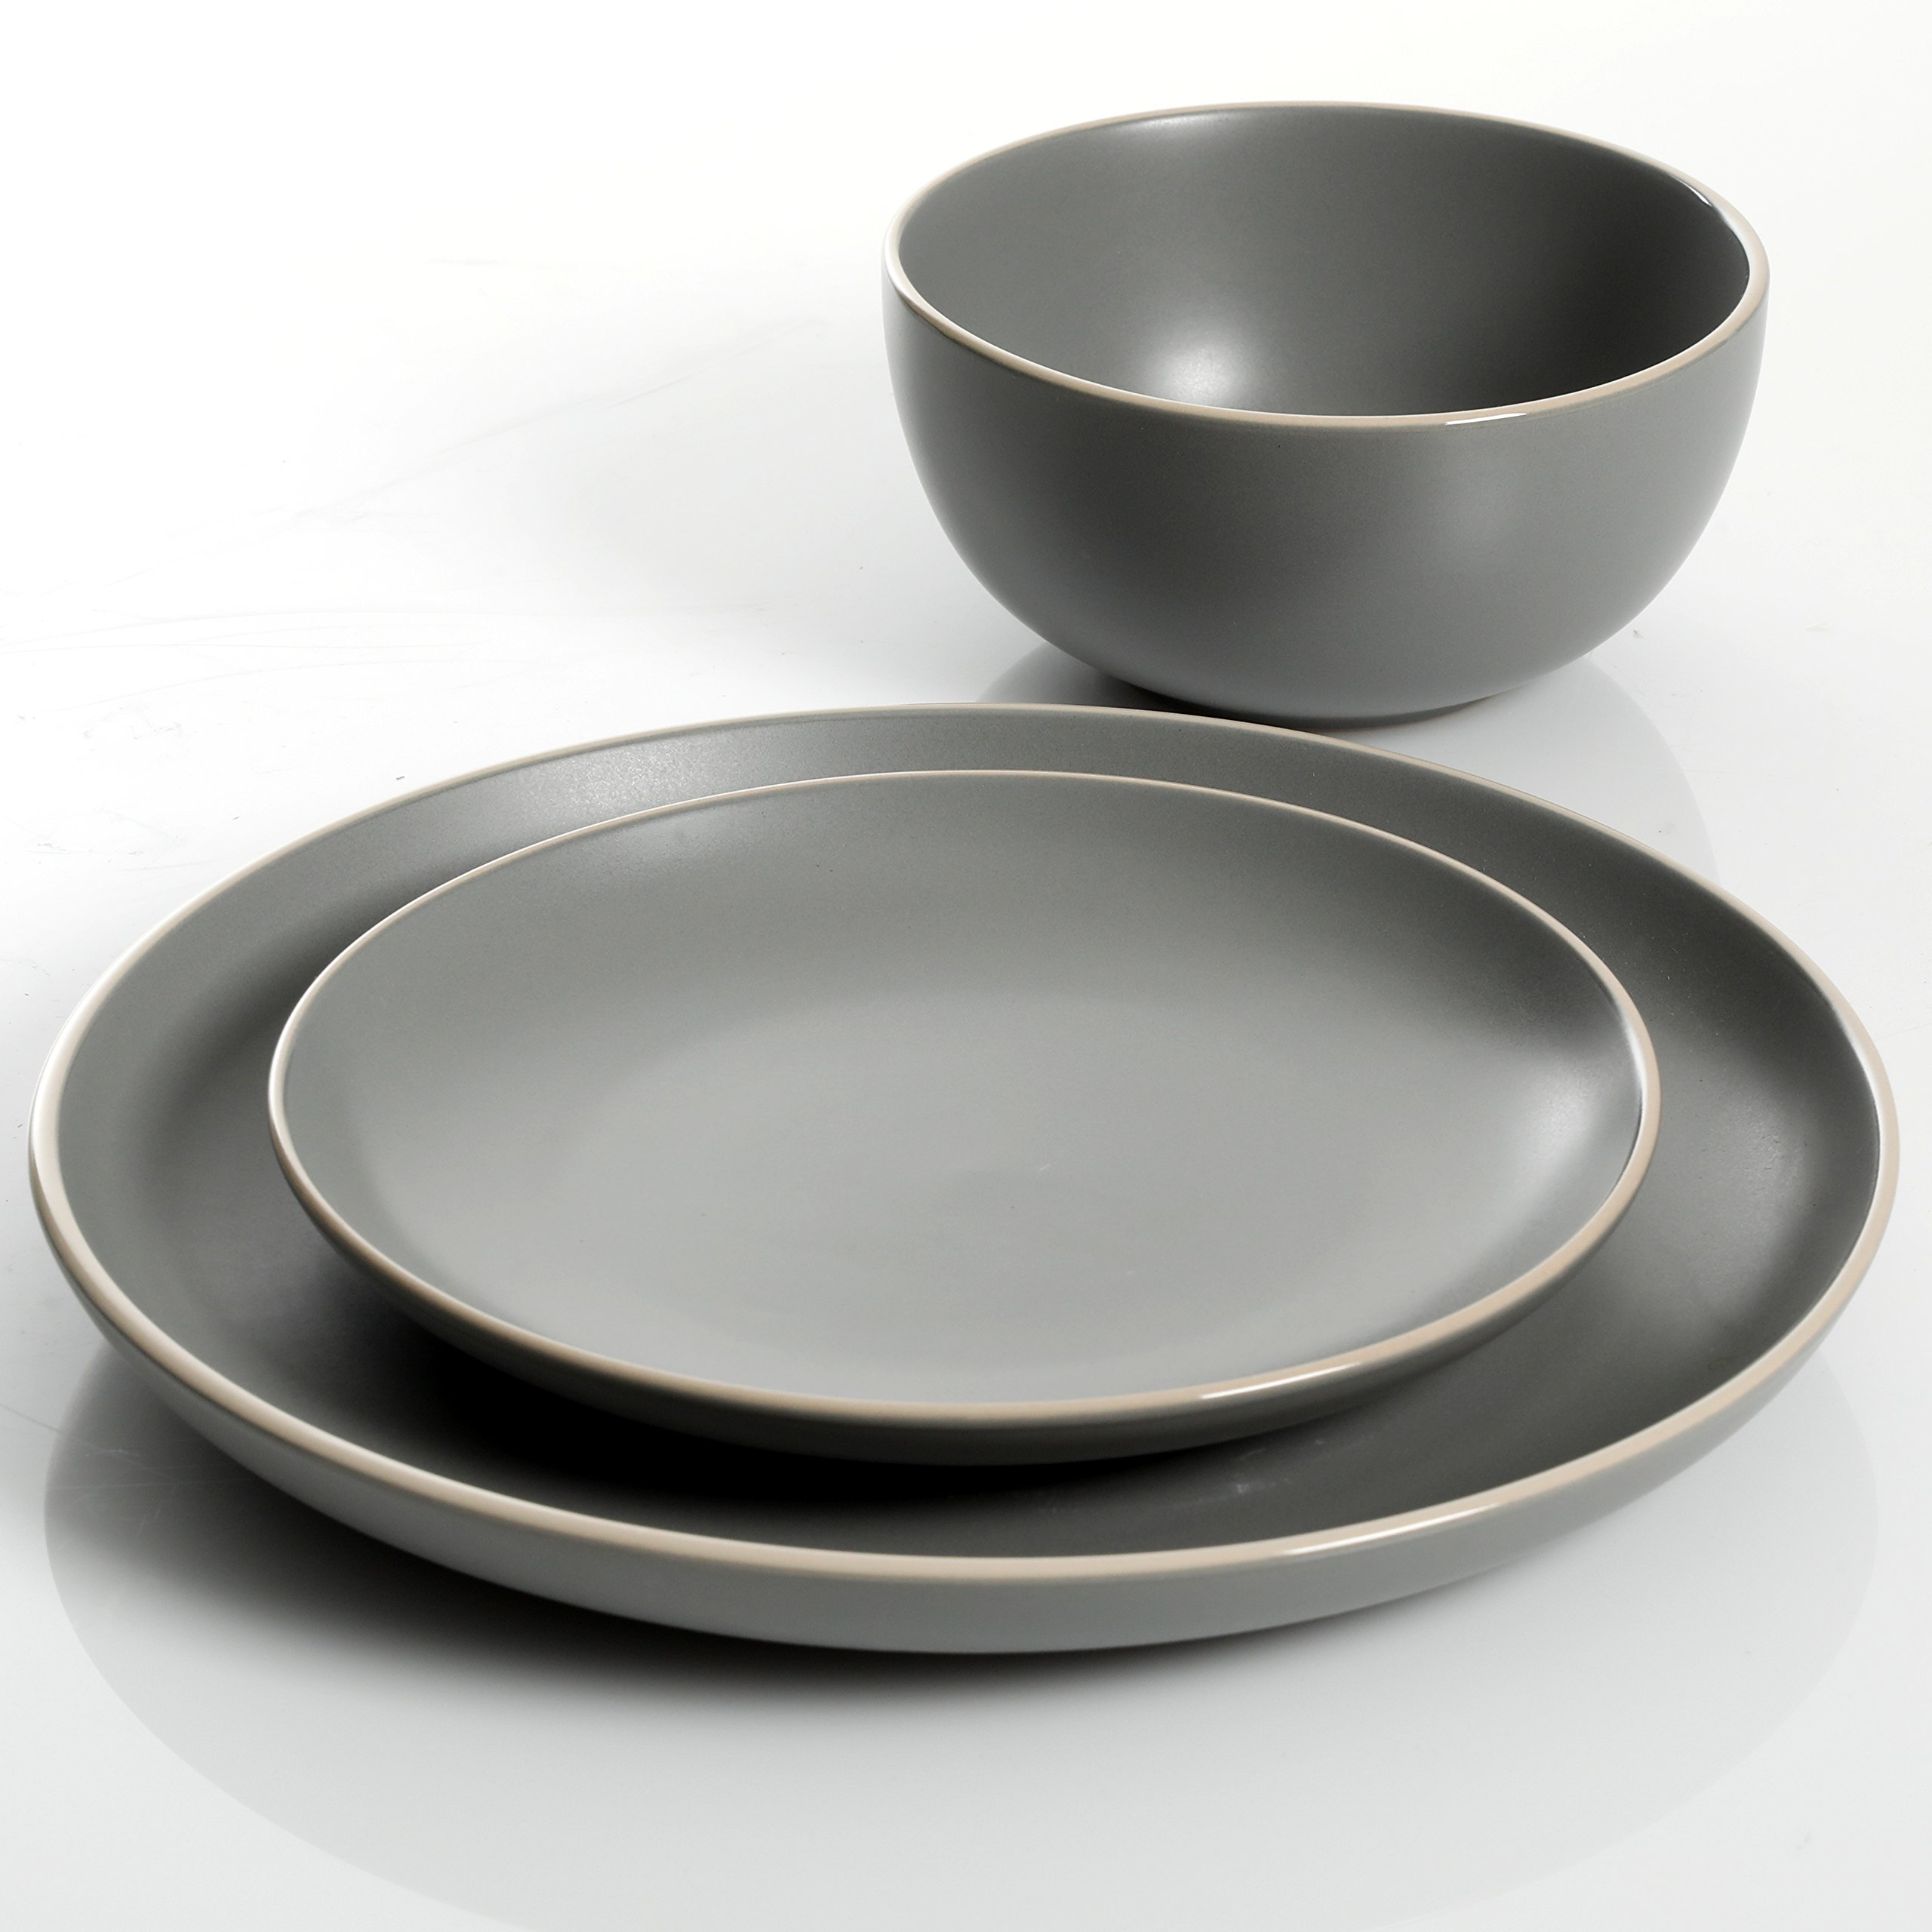 Gibson Home 114388.12RM Rockaway 12-Piece Dinnerware Set Service for 4, Grey Matte by Gibson Home (Image #3)